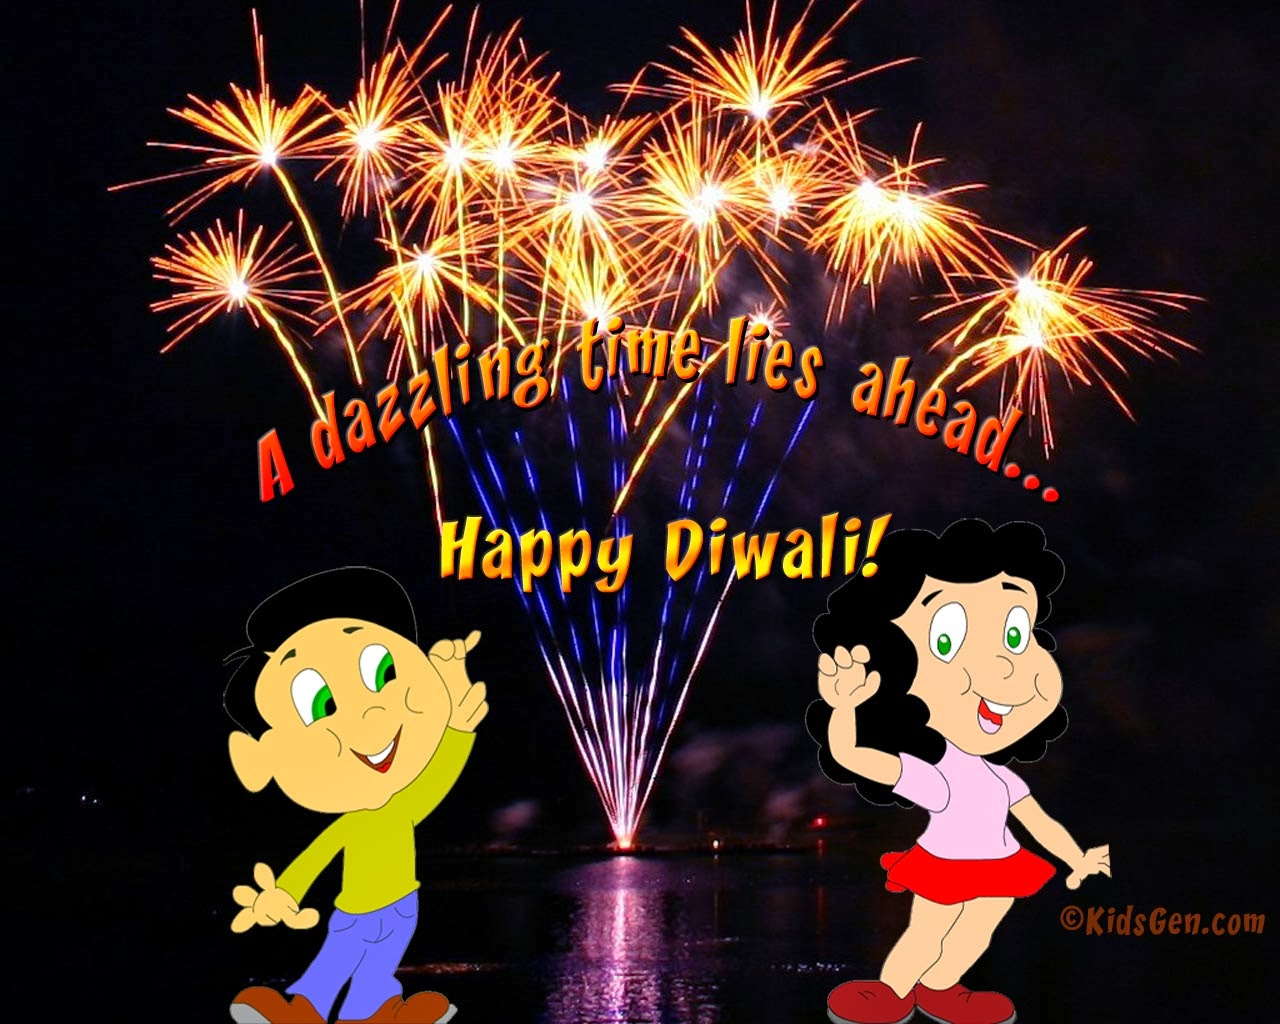 Happy Diwali Wallpapers And Backgrounds: ALL-IN-ONE WALLPAPERS: Happy Diwali Festival Of Lights